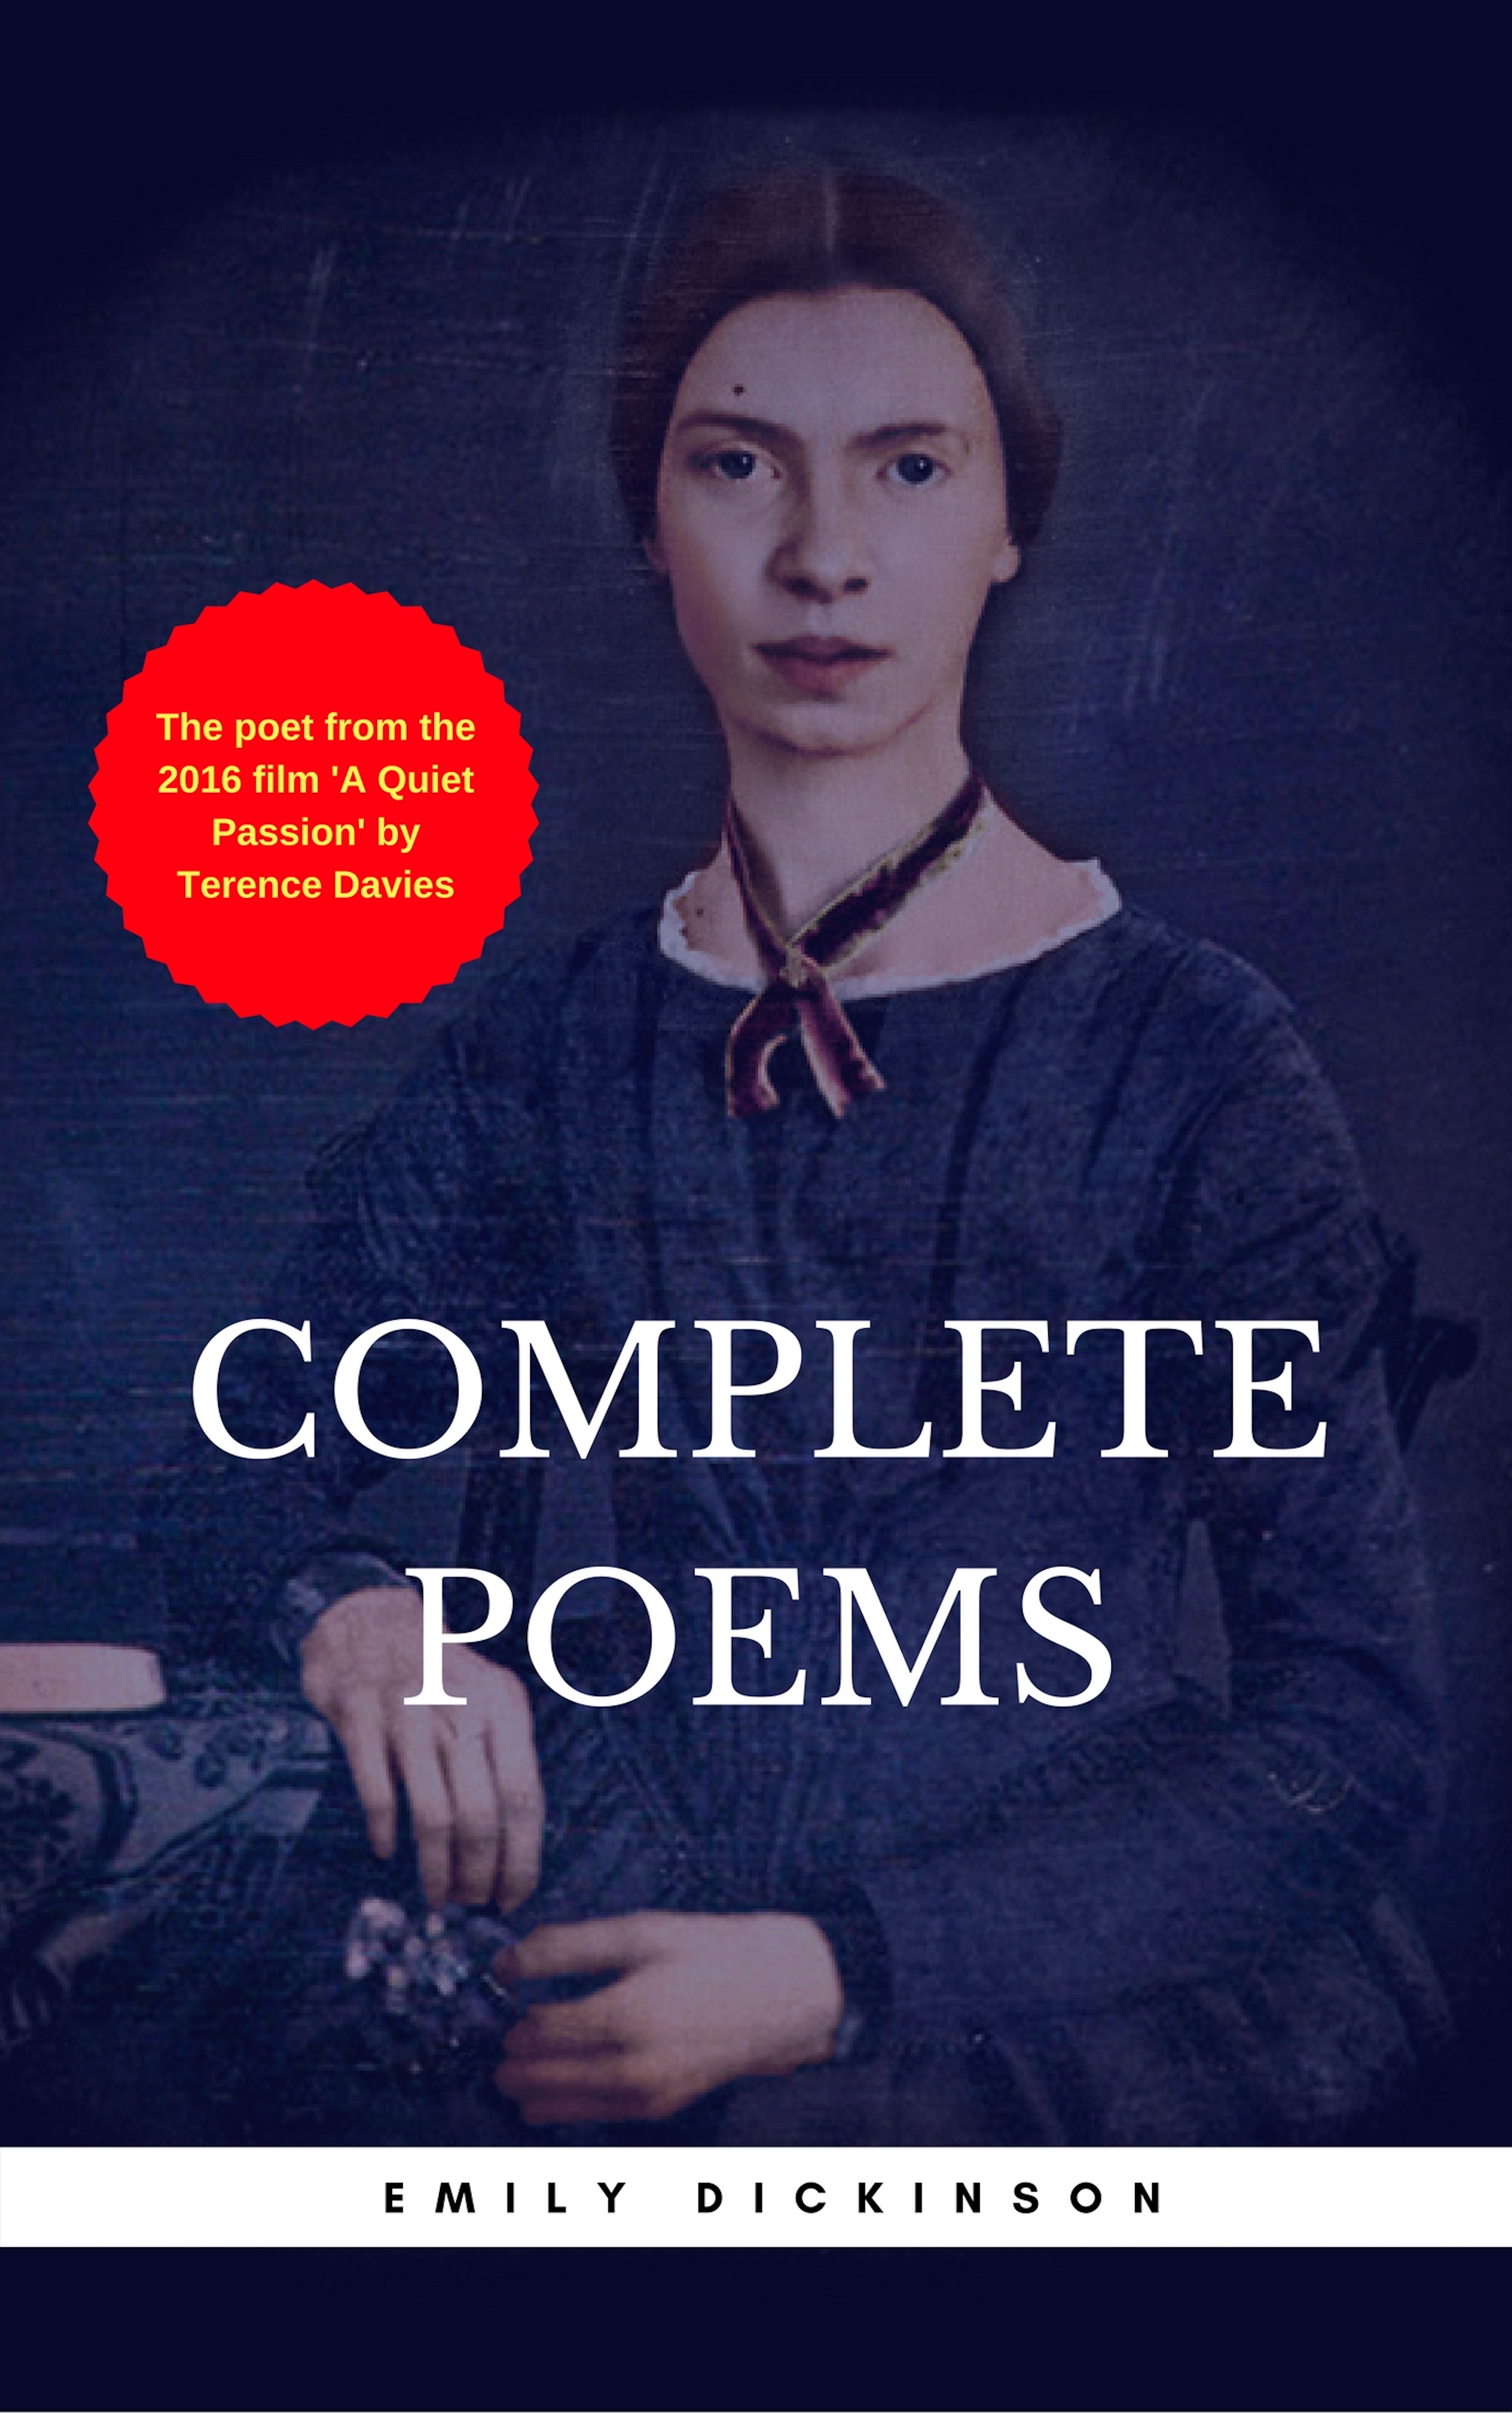 Emily Dickinson Emily Dickinson: Complete Poems (Book Center) bruce dickinson bruce dickinson balls to picasso